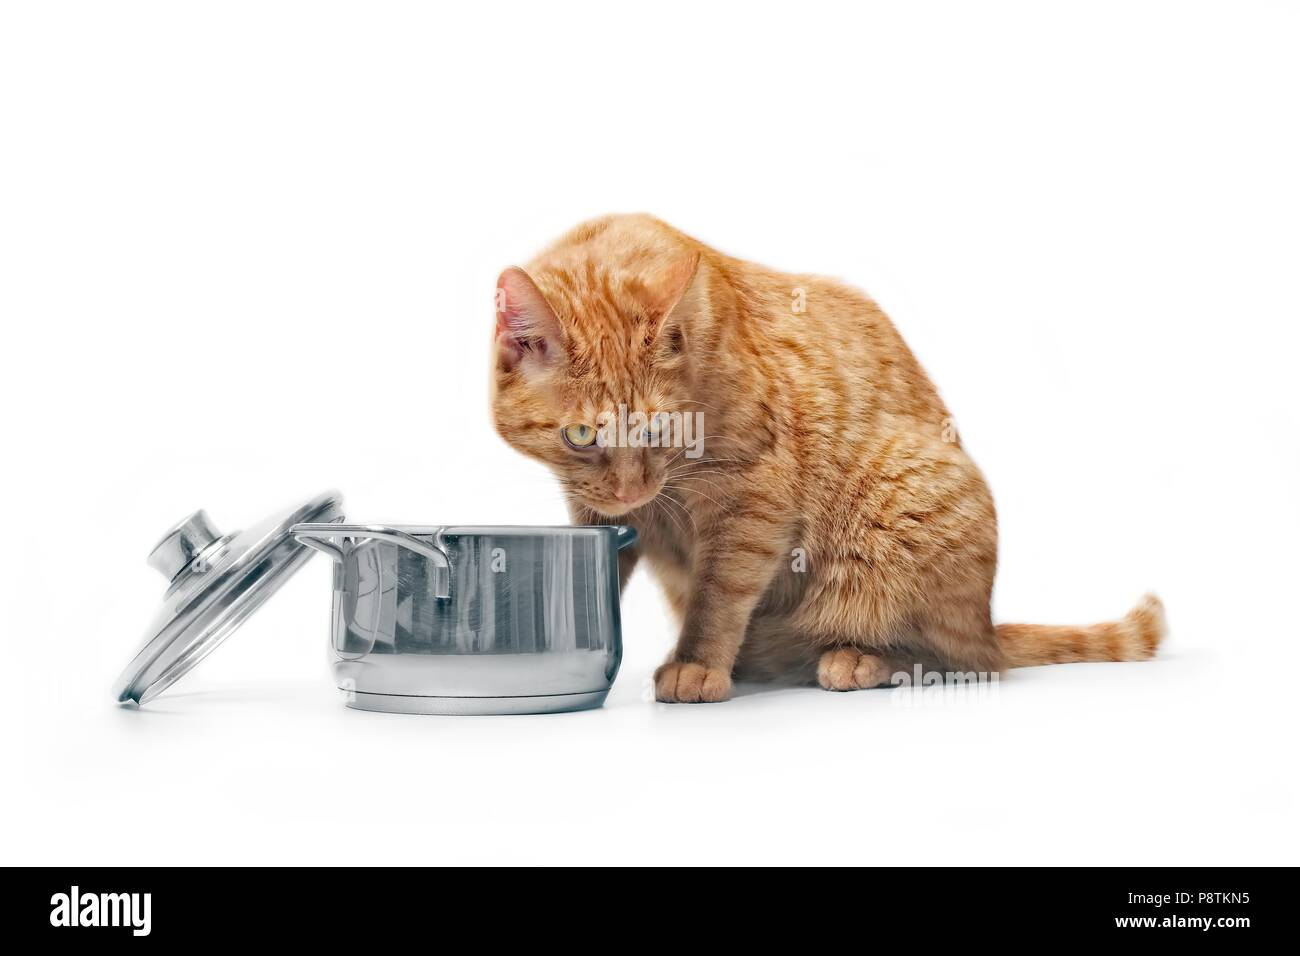 Hungry ginger cat looking curious in a cooking pot. - Stock Image